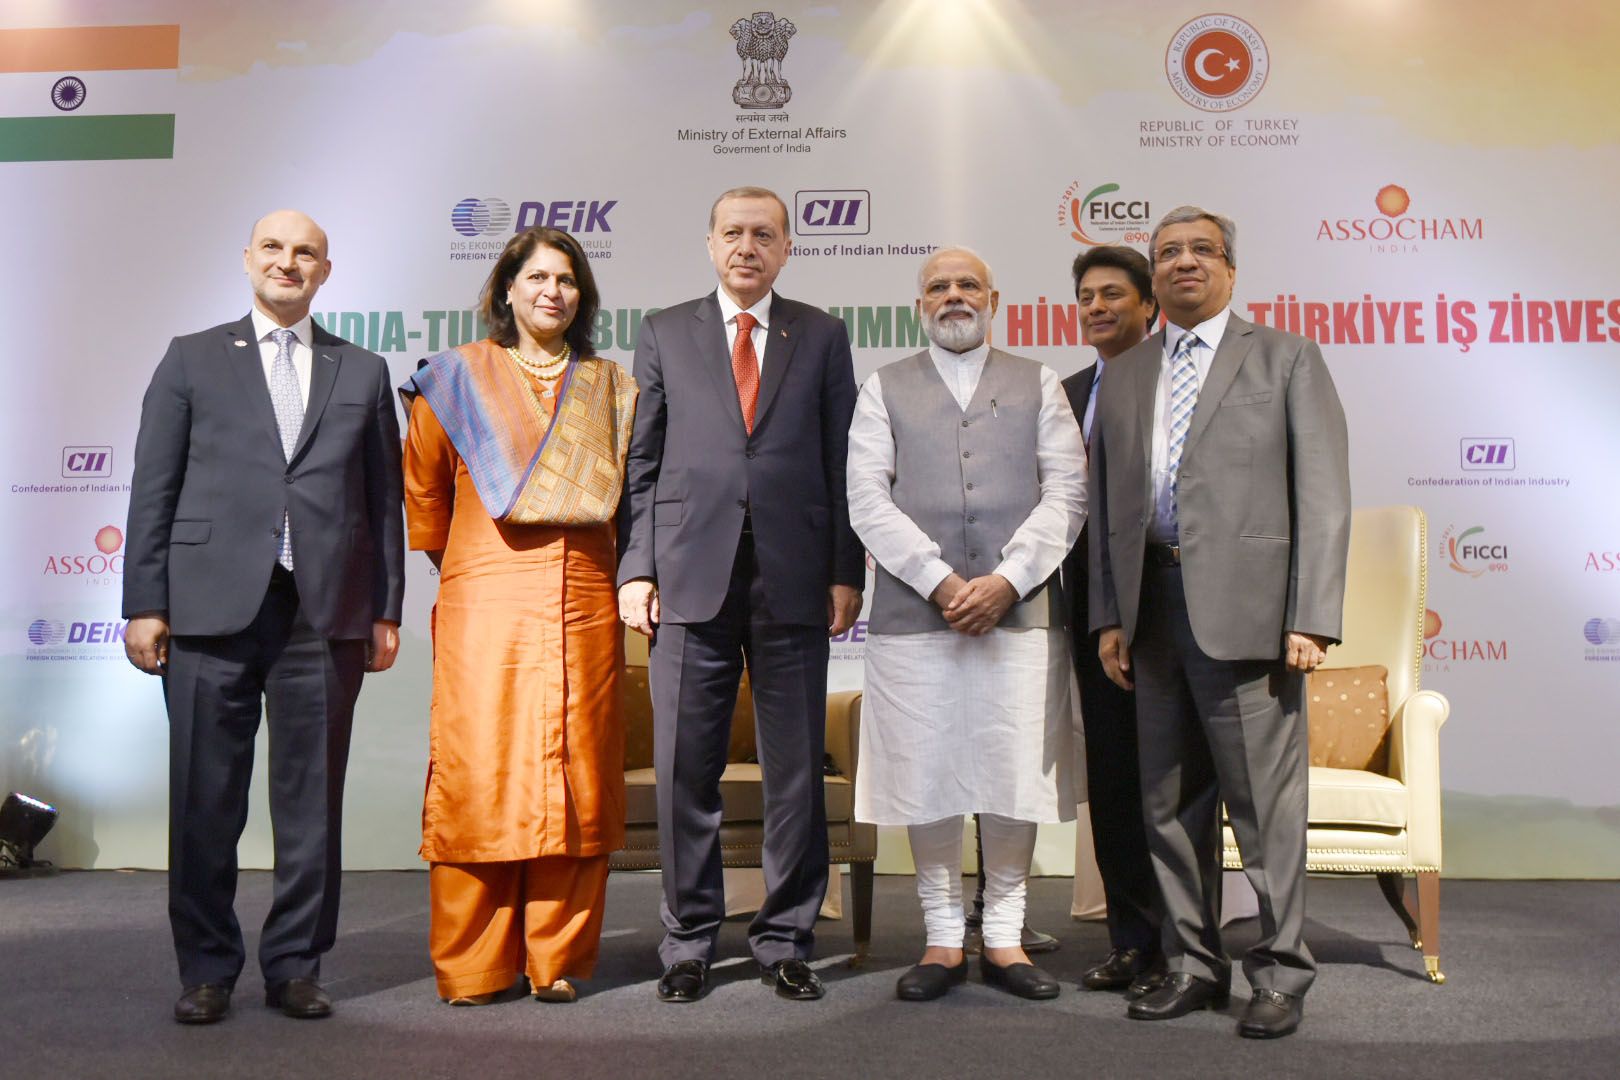 Both heads of state at the India-Turkey summit.